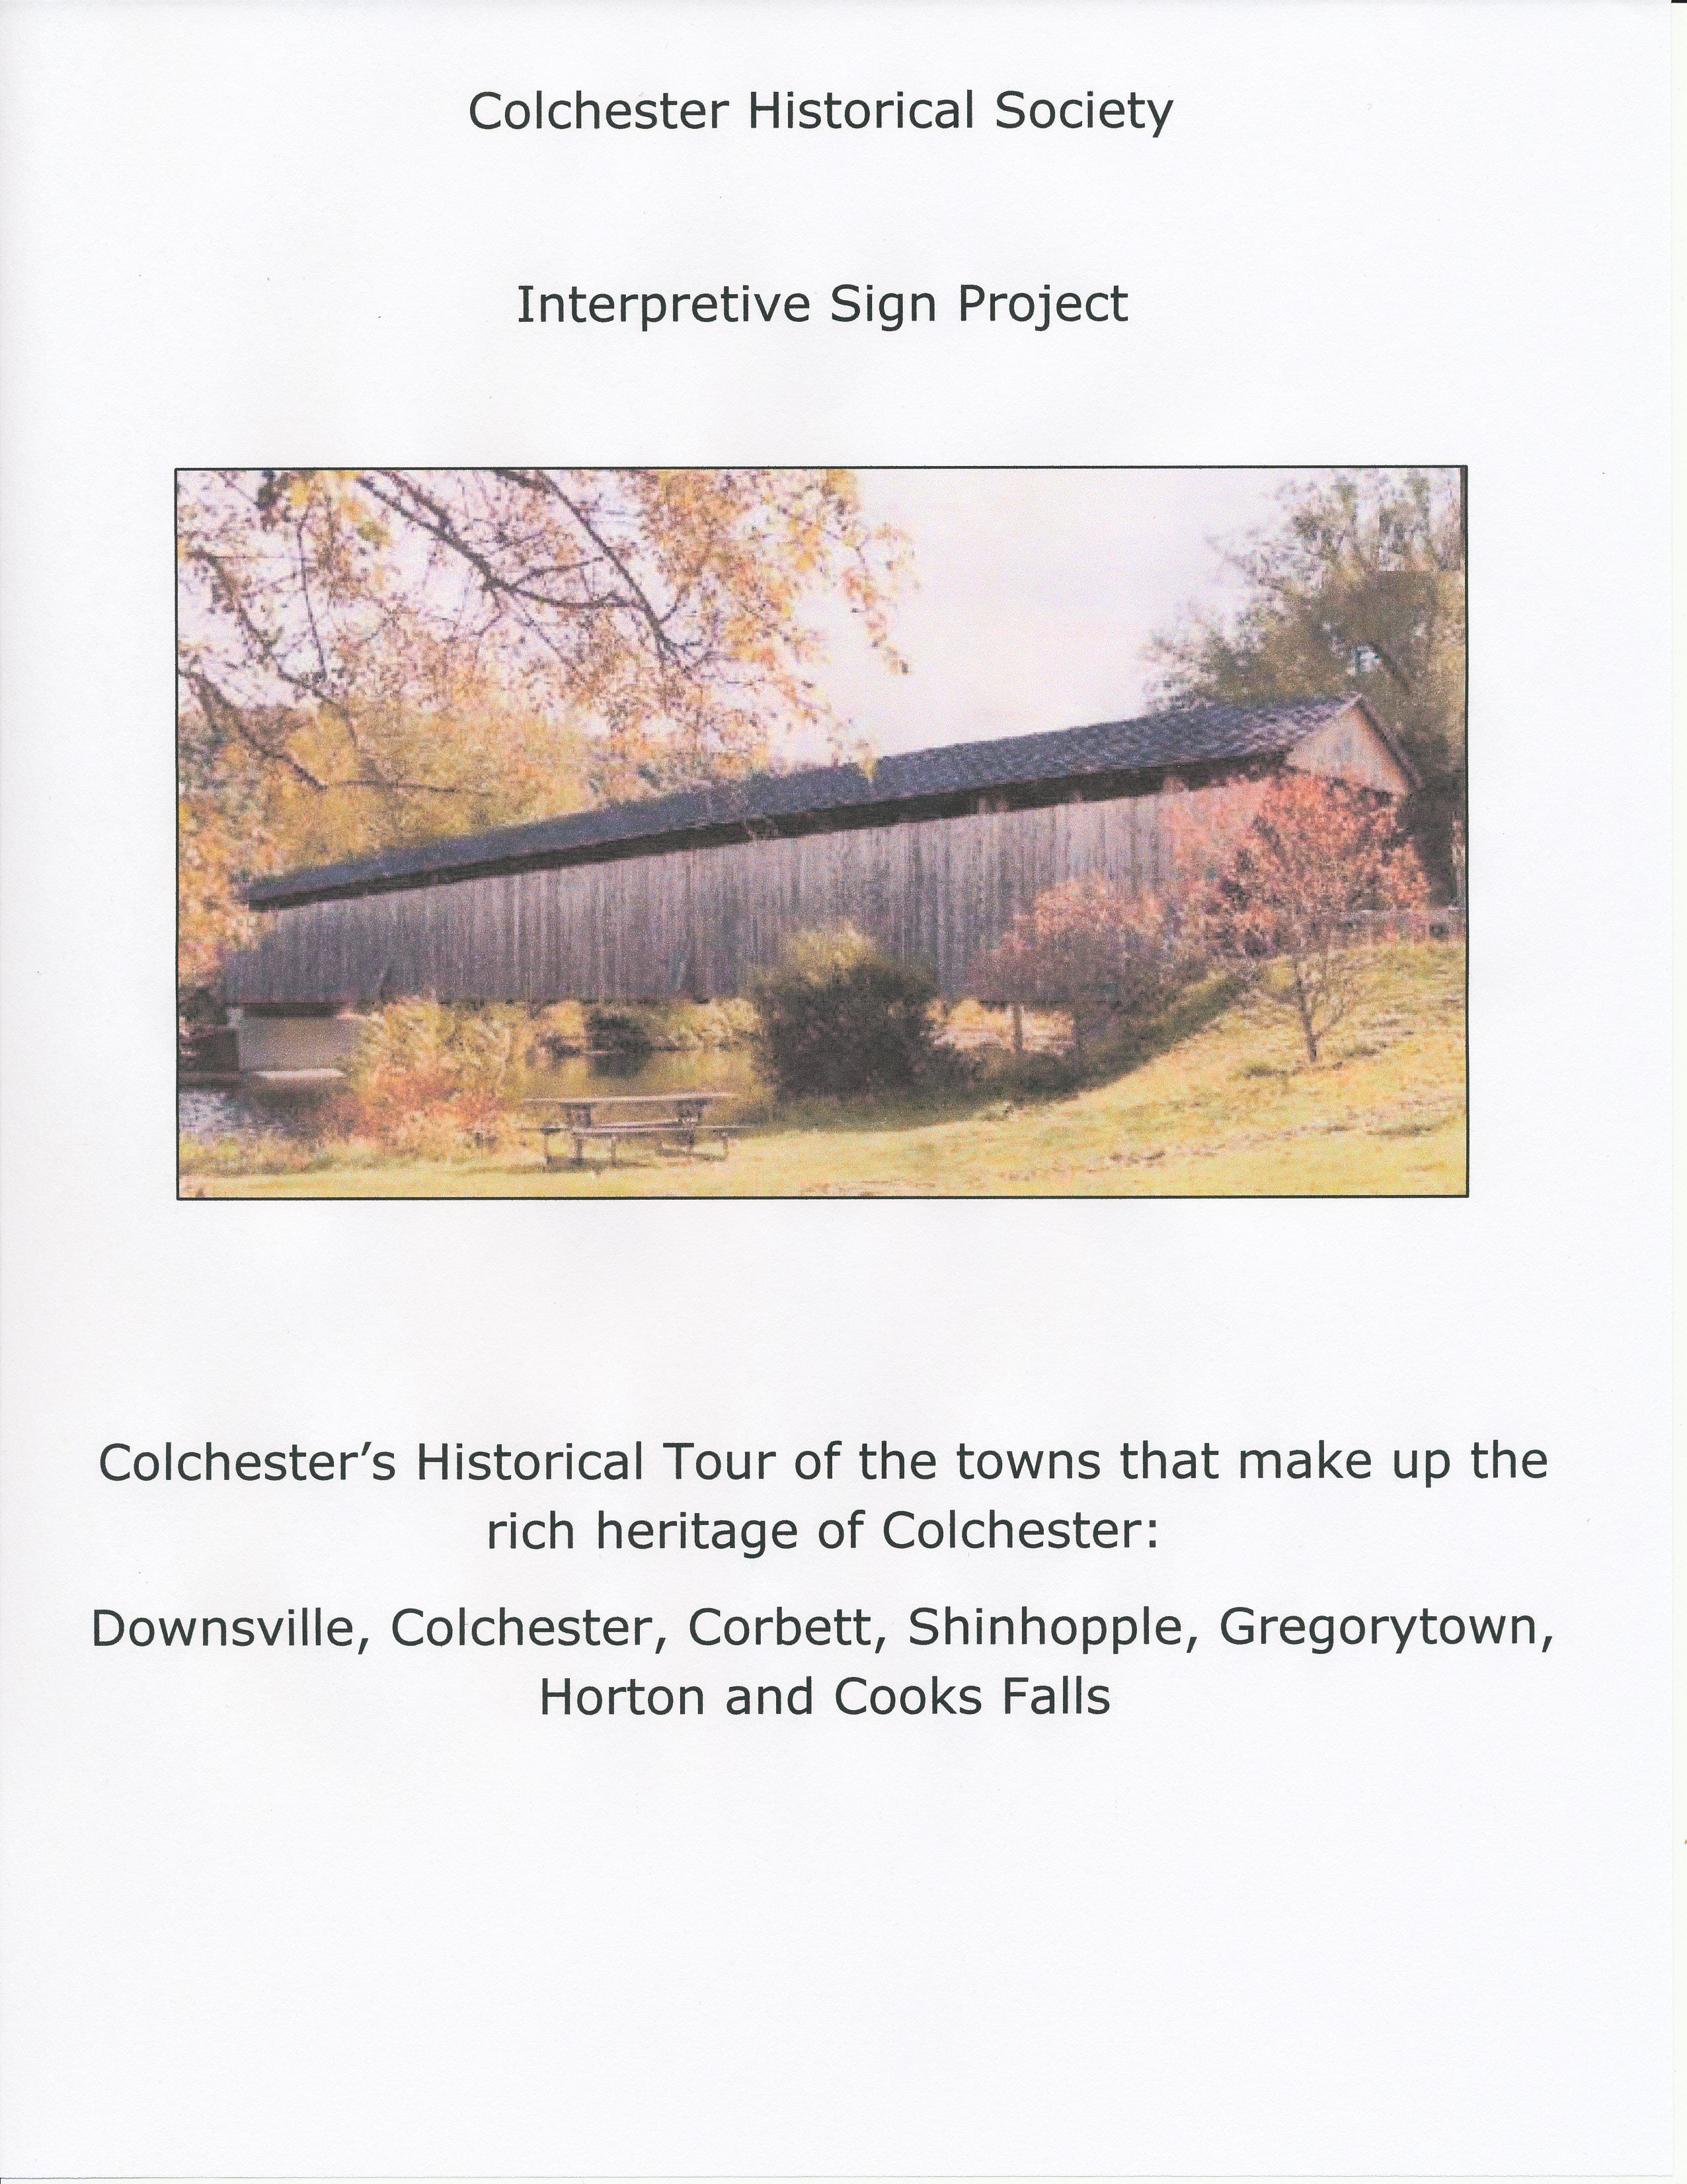 Interpretive Sign Project